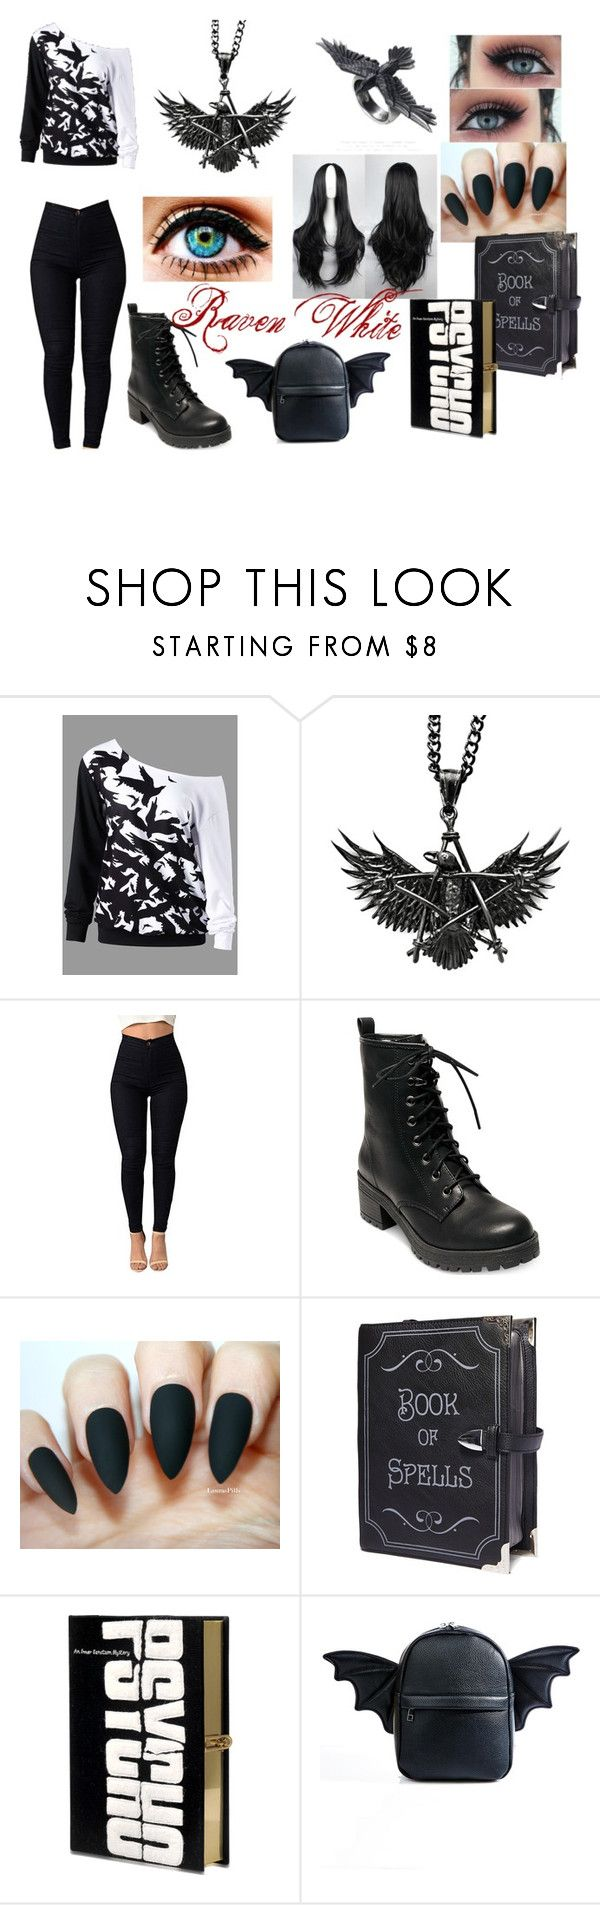 """Raven White"" by sabine-rainhart on Polyvore featuring Prophecy, Madden Girl, Current Mood and Olympia Le-Tan"